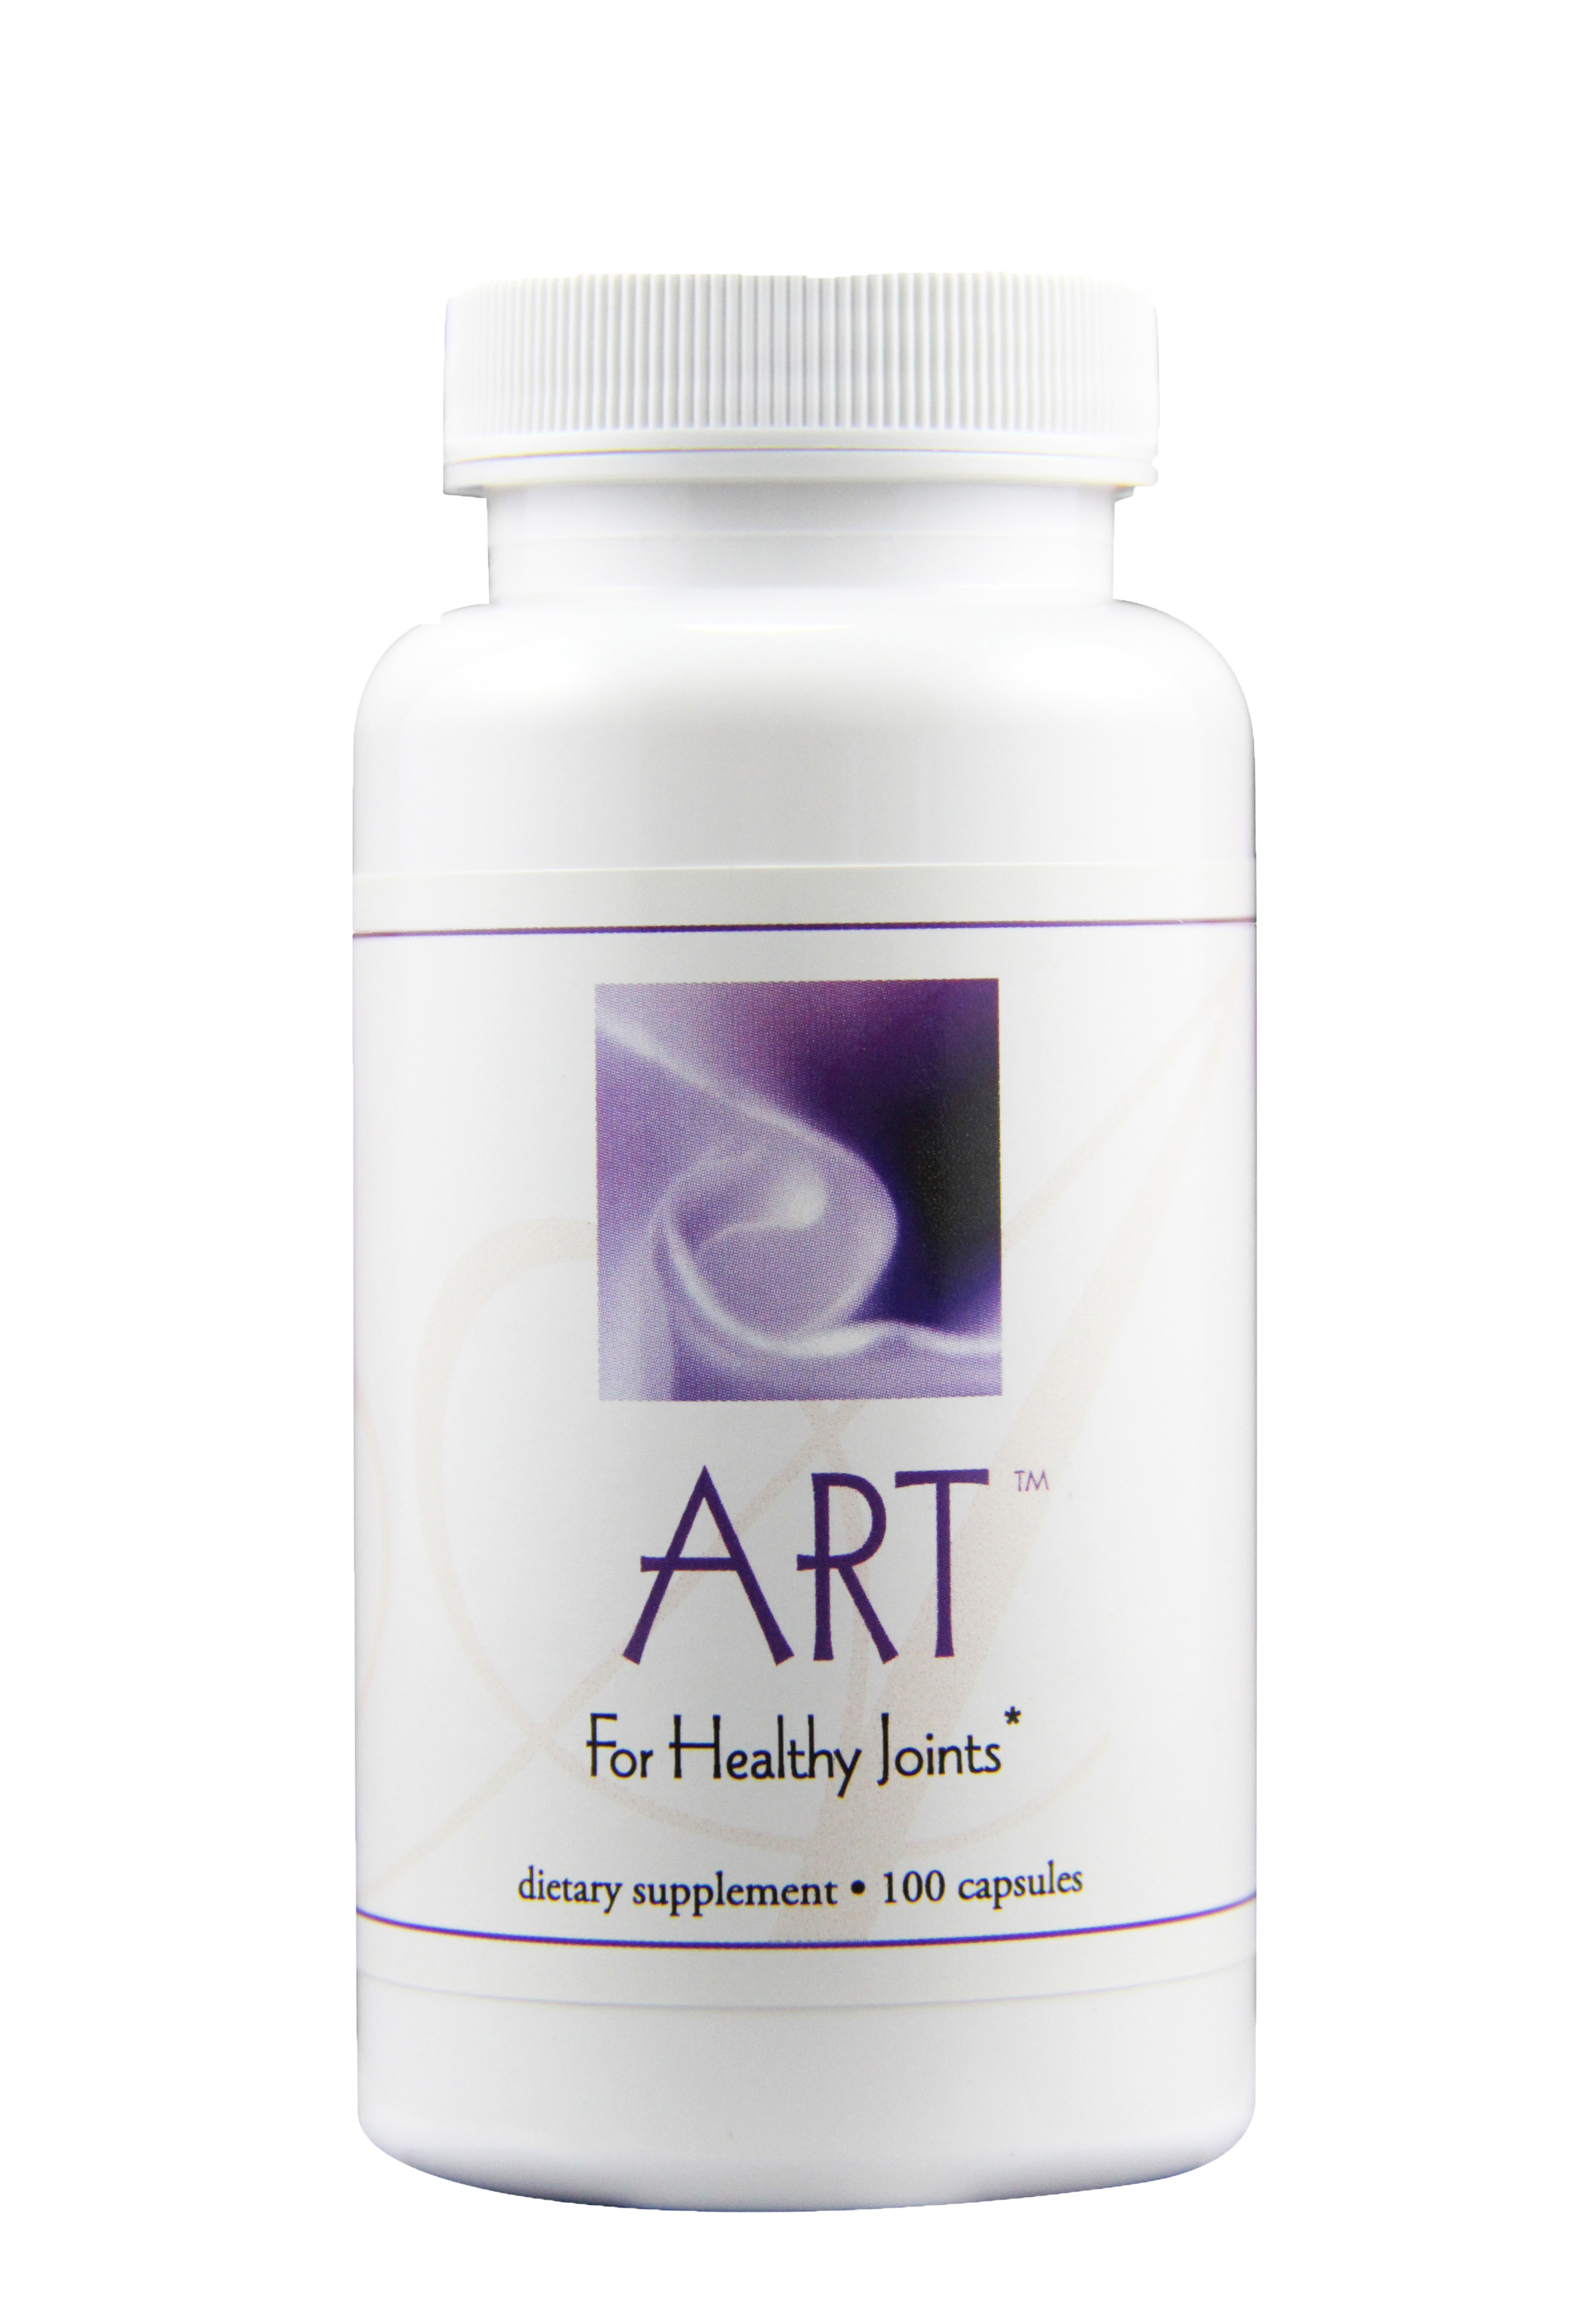 ART - DAILY SUPPORT FOR HEALTHY JOINTS*Featured Ingredients: Peach Seed, Safflower, Ginseng, Dong Quai, Licorice Root, Chinese Lovage Root, Chinese Date